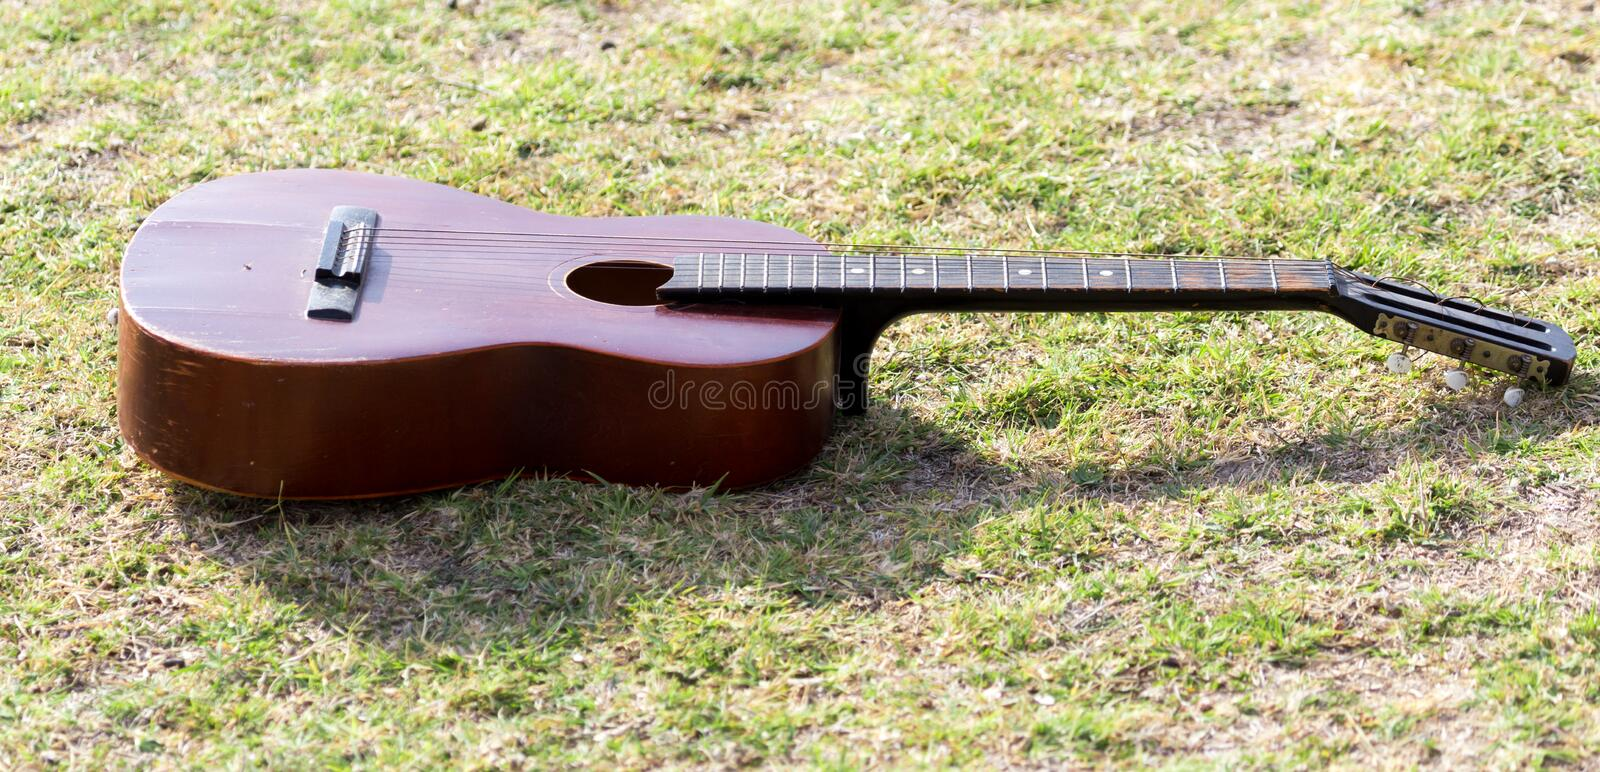 Guitar lying on the grass on the nature royalty free stock image